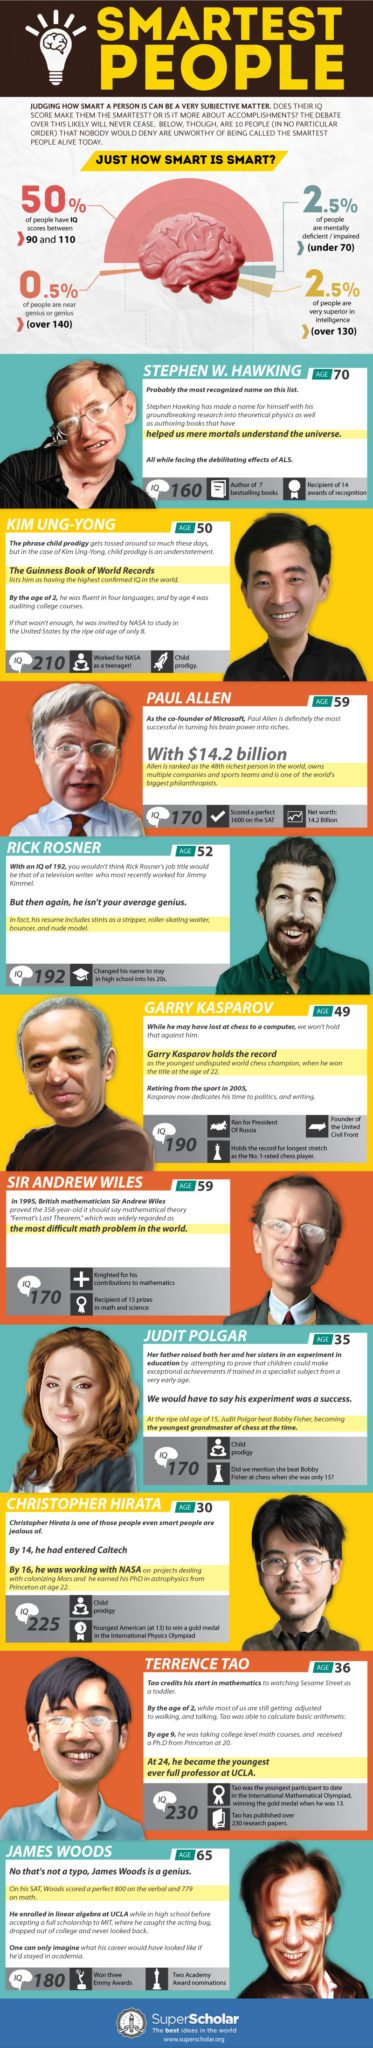 Smartest People [Infographic]